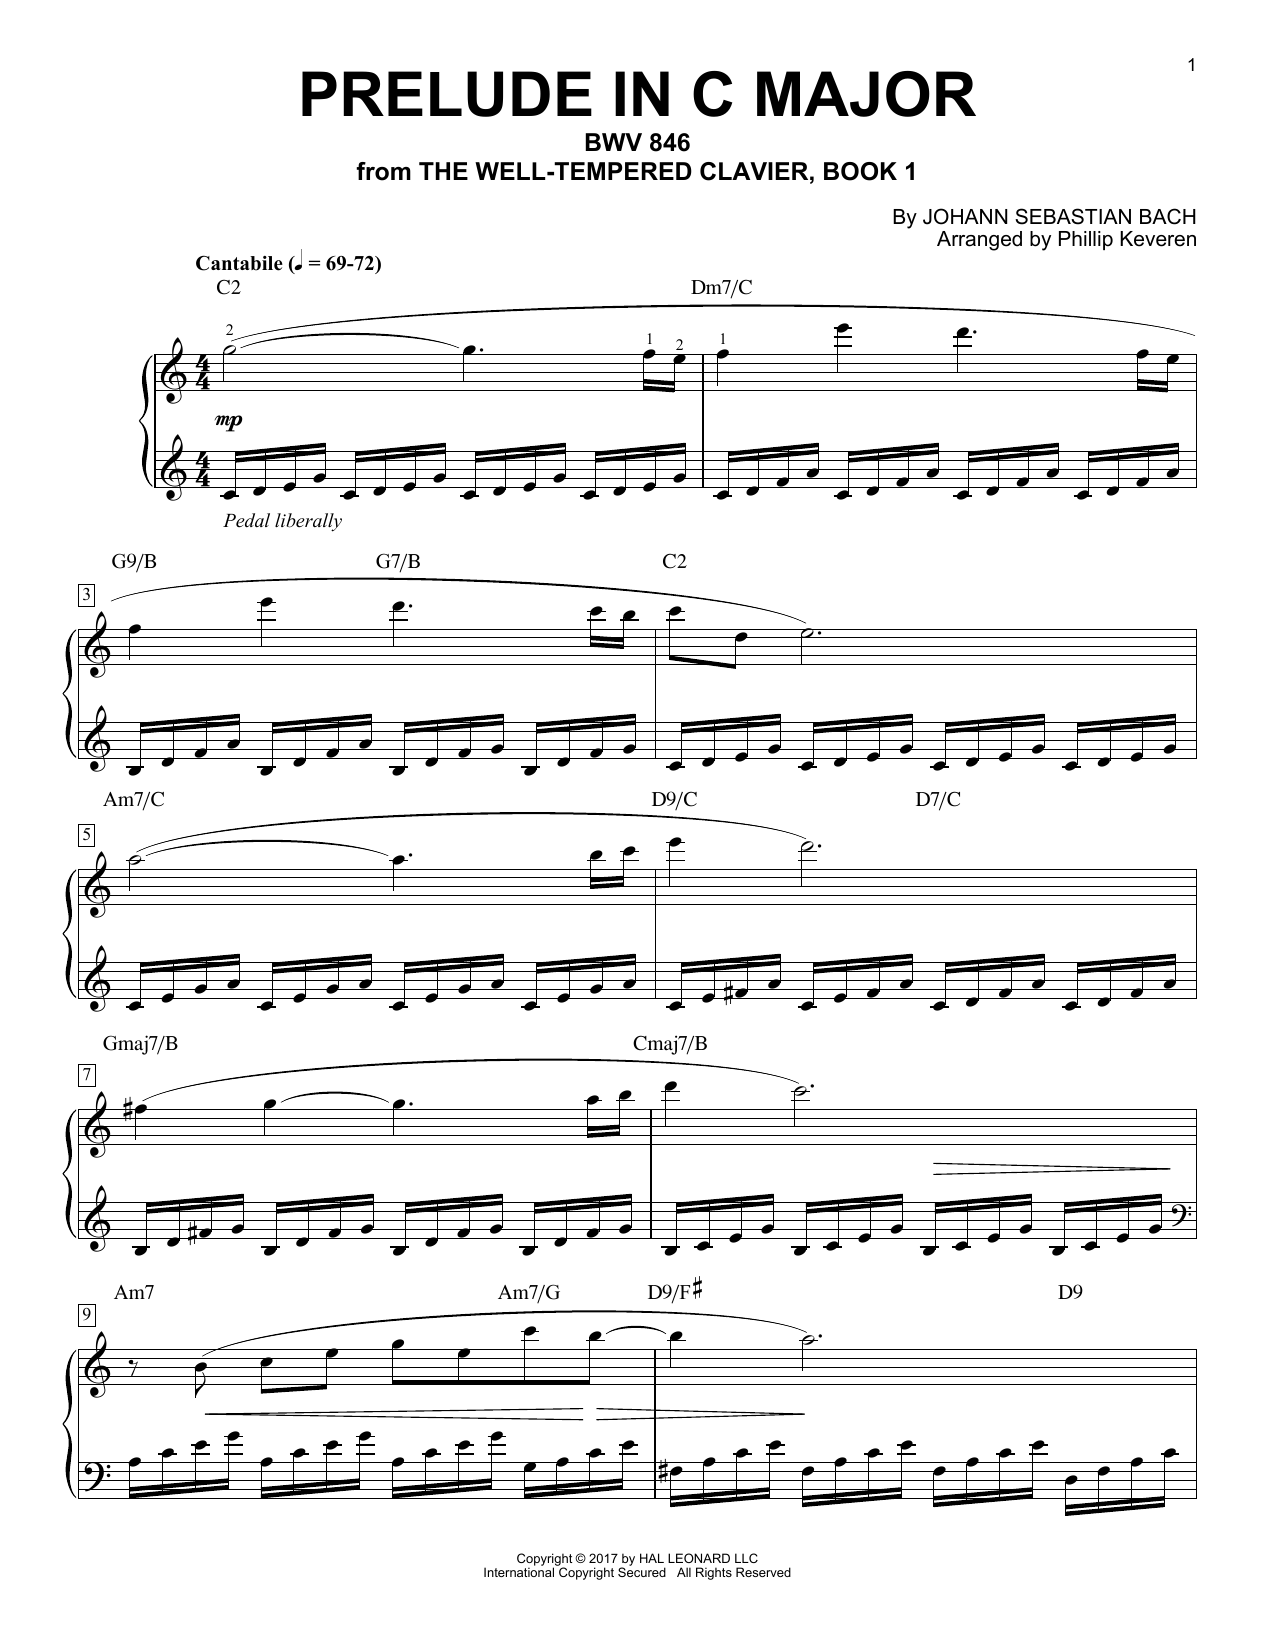 Phillip Keveren Prelude In C Major, BWV 846 sheet music notes and chords